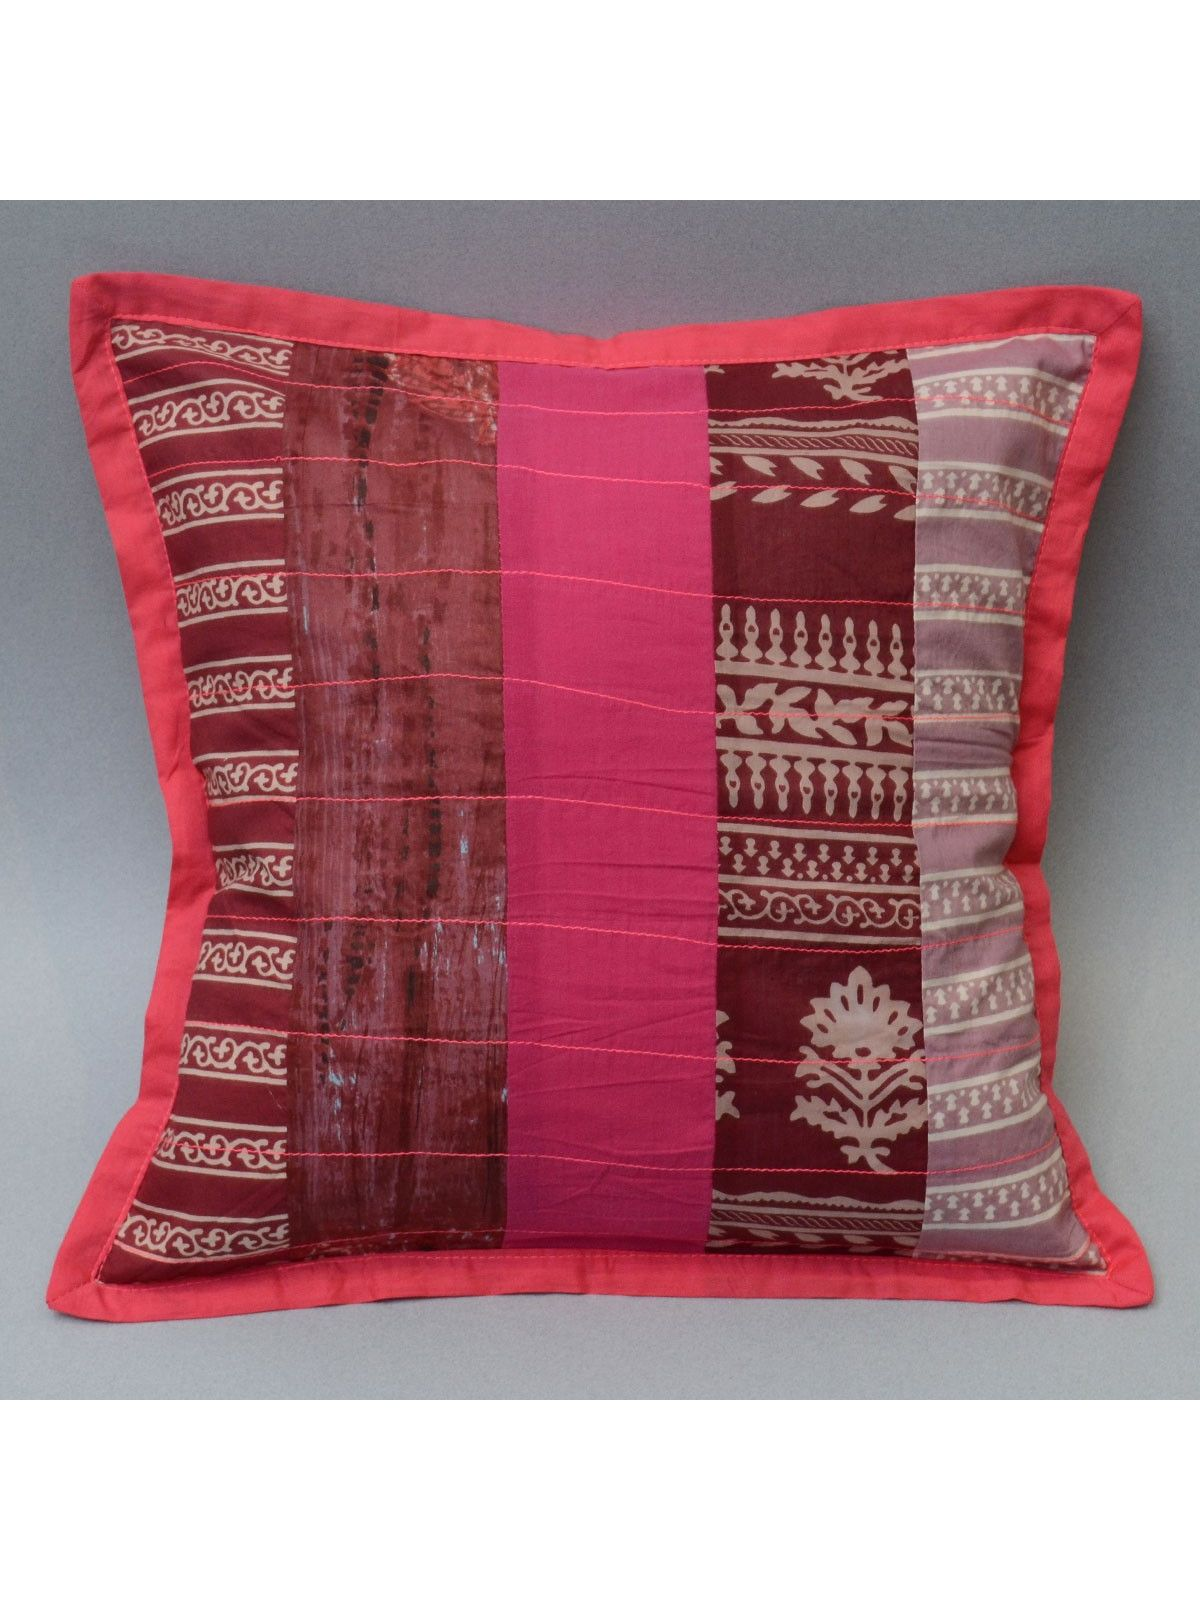 Cotton Patch Work Cushion Cover, Pink Color - 16 x 16 Inch